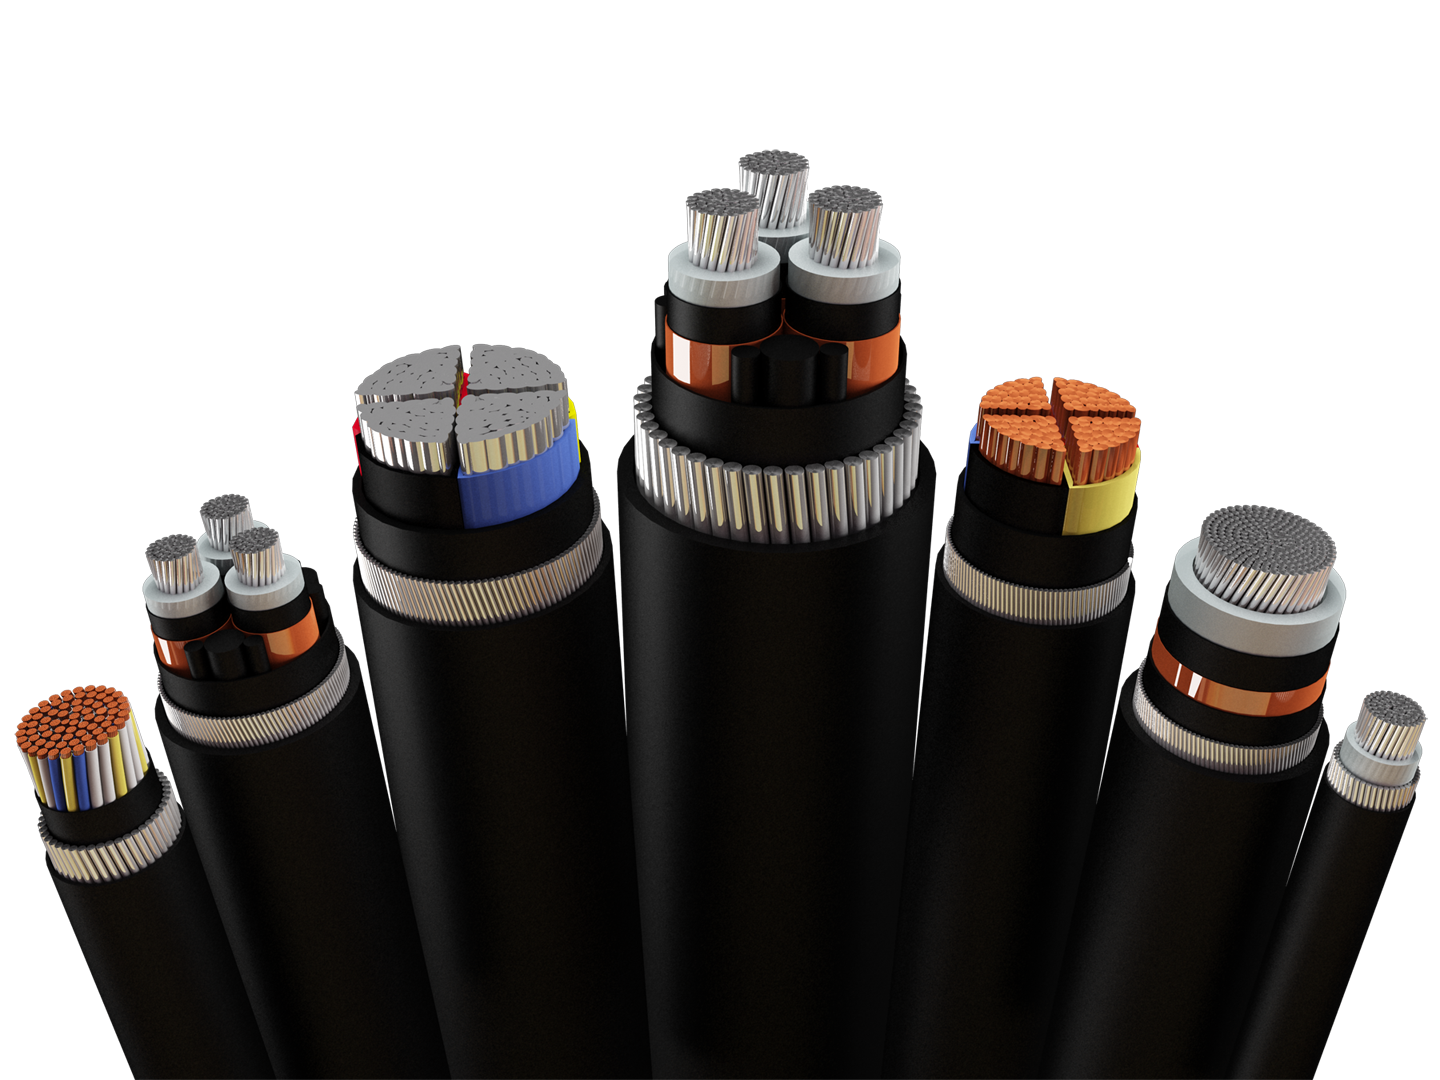 Industrial cables